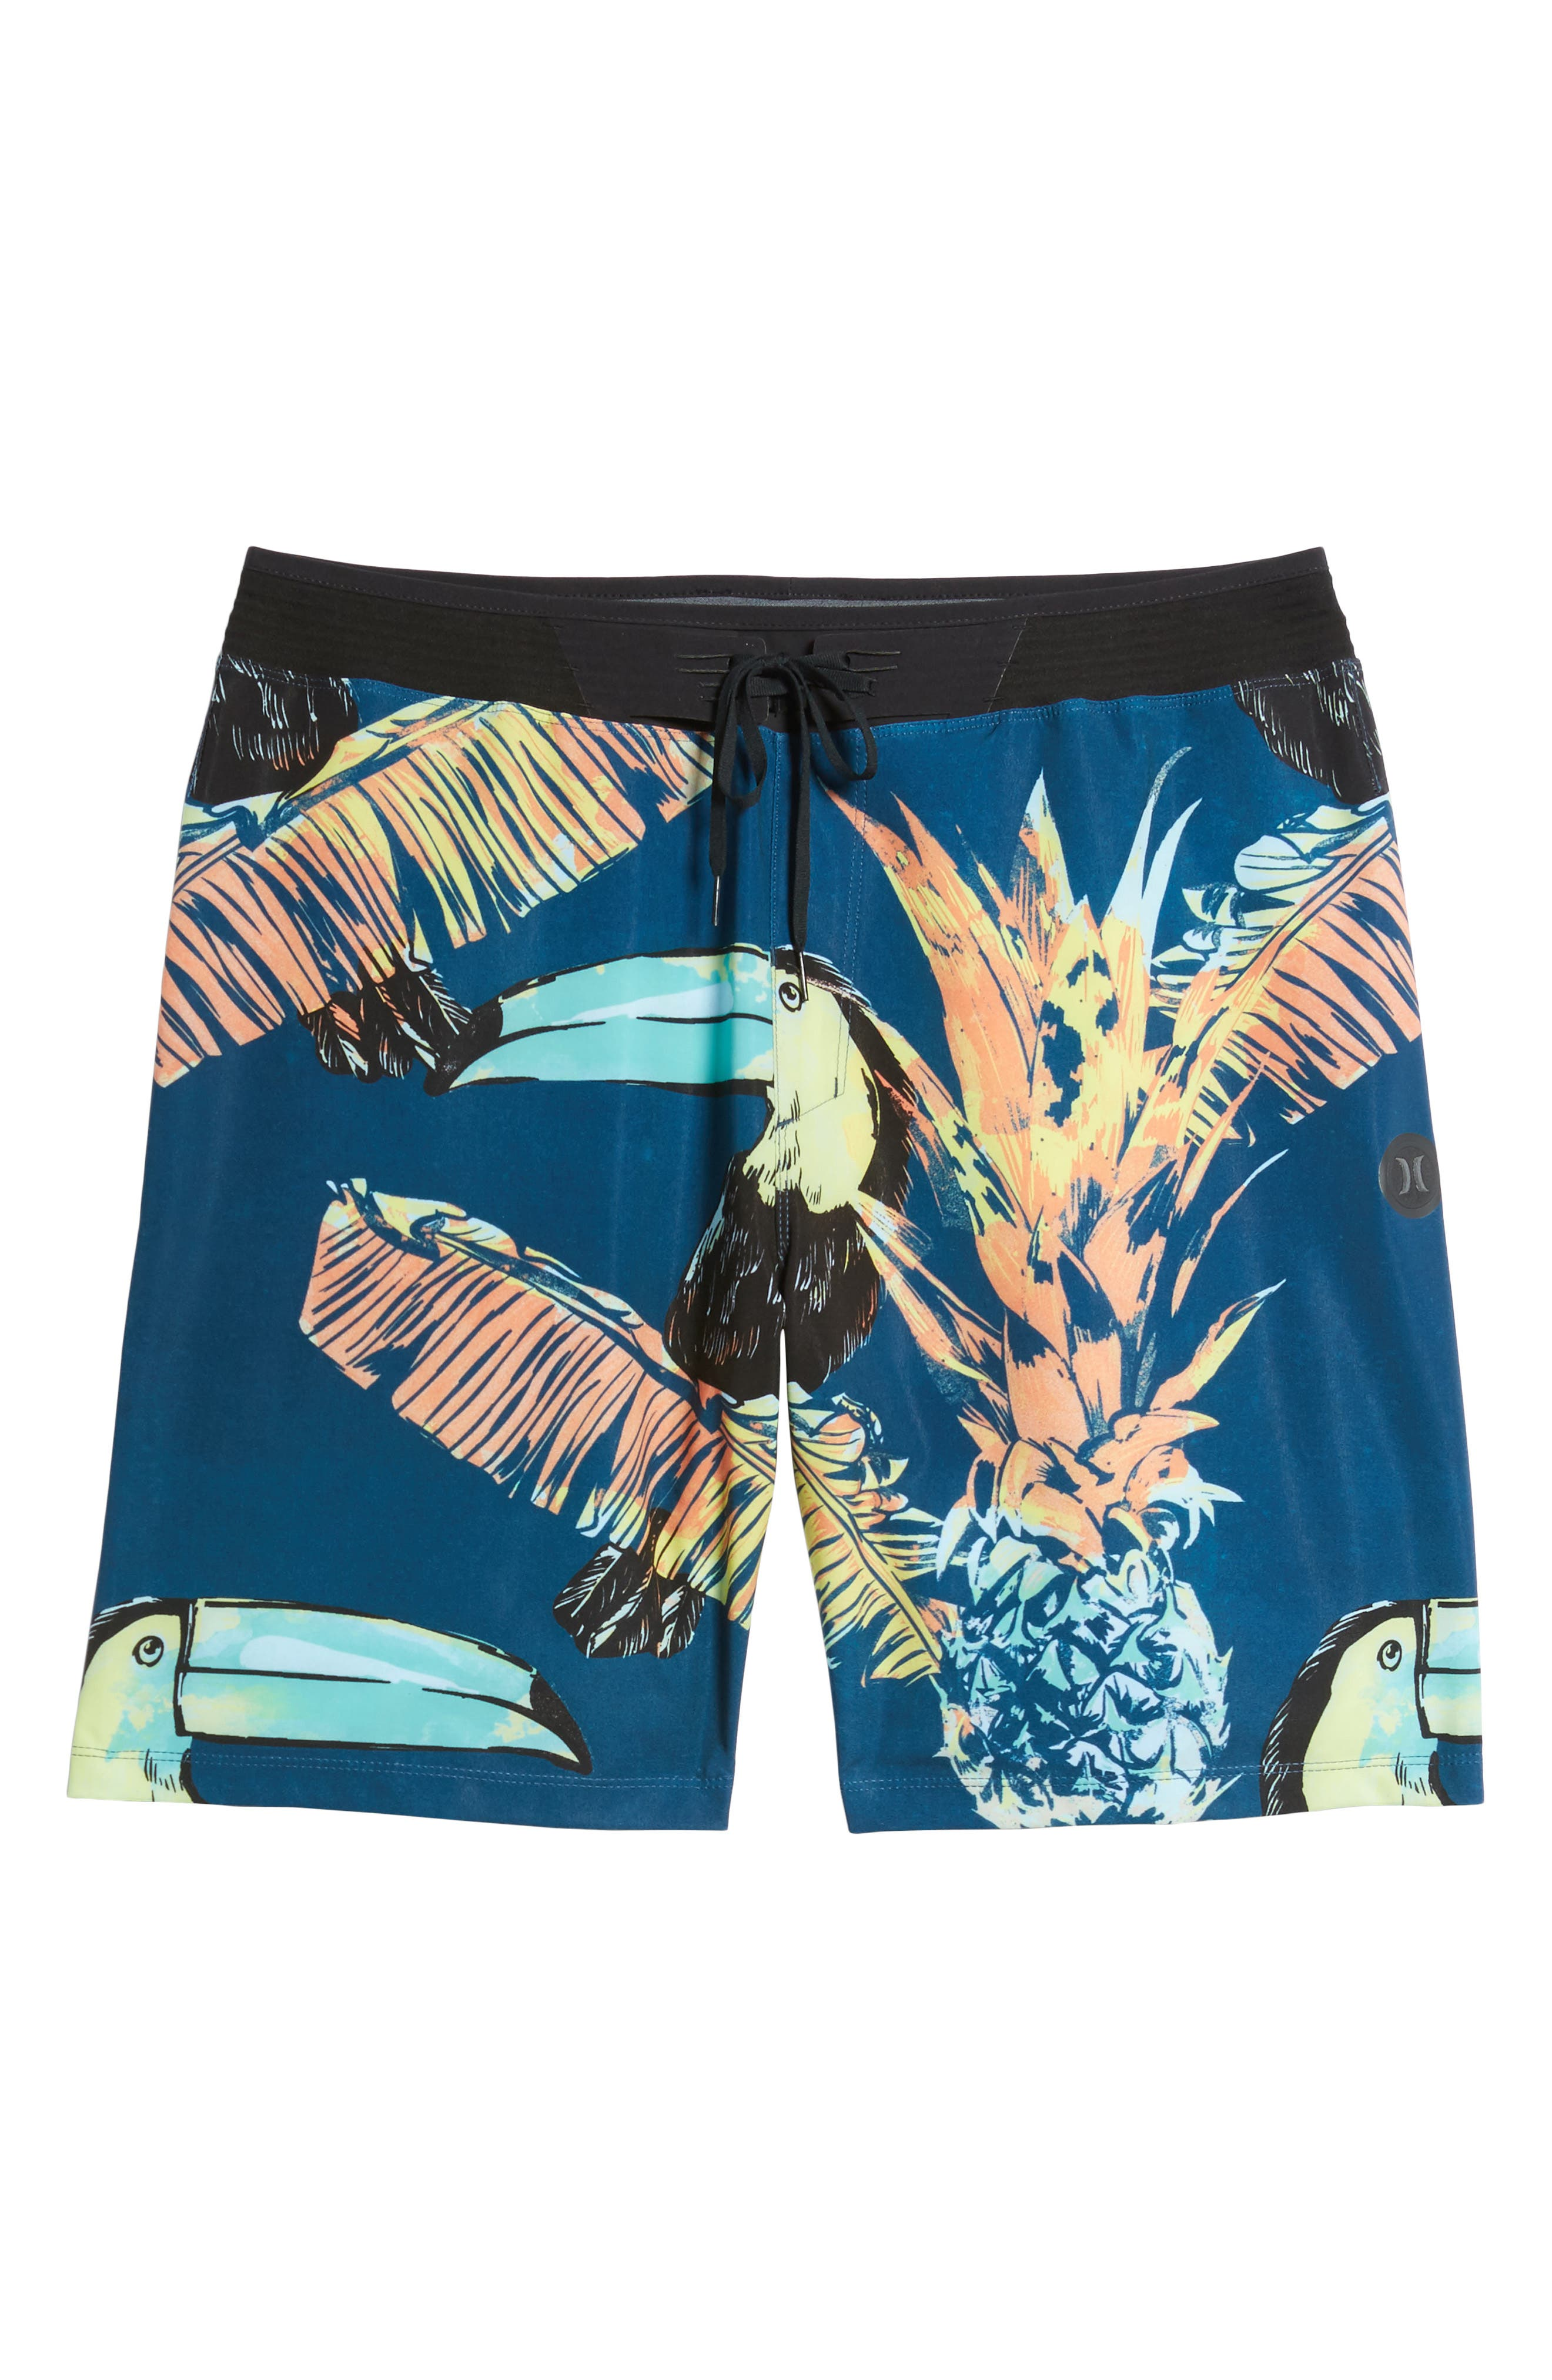 Phantom Hyperweave 3.0 Board Shorts,                             Alternate thumbnail 6, color,                             474